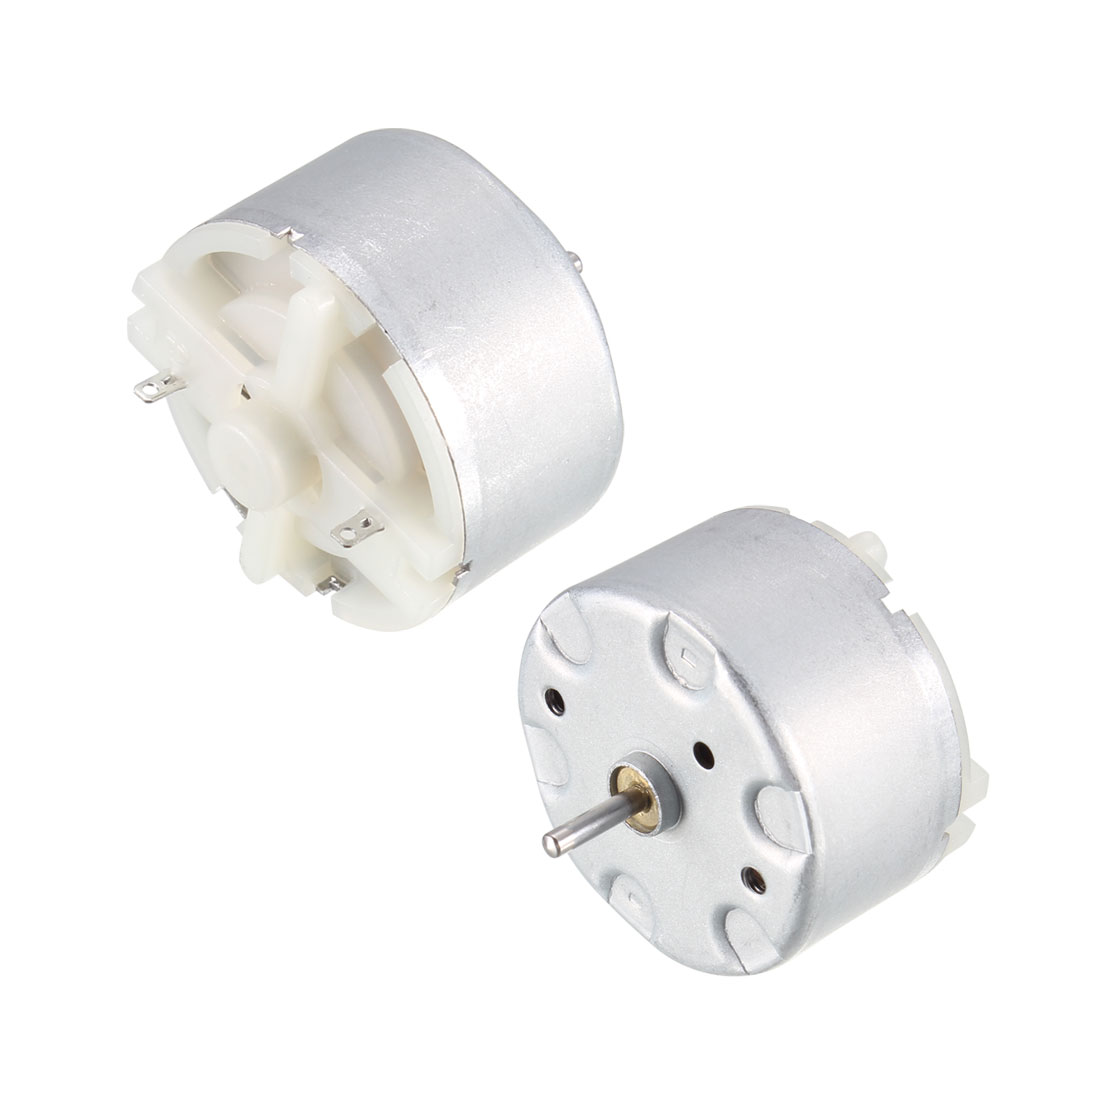 DC1.5-12V 2700RPM 32mm Micro Massager Vibrating Motor RF-500TB-12560 2pcs